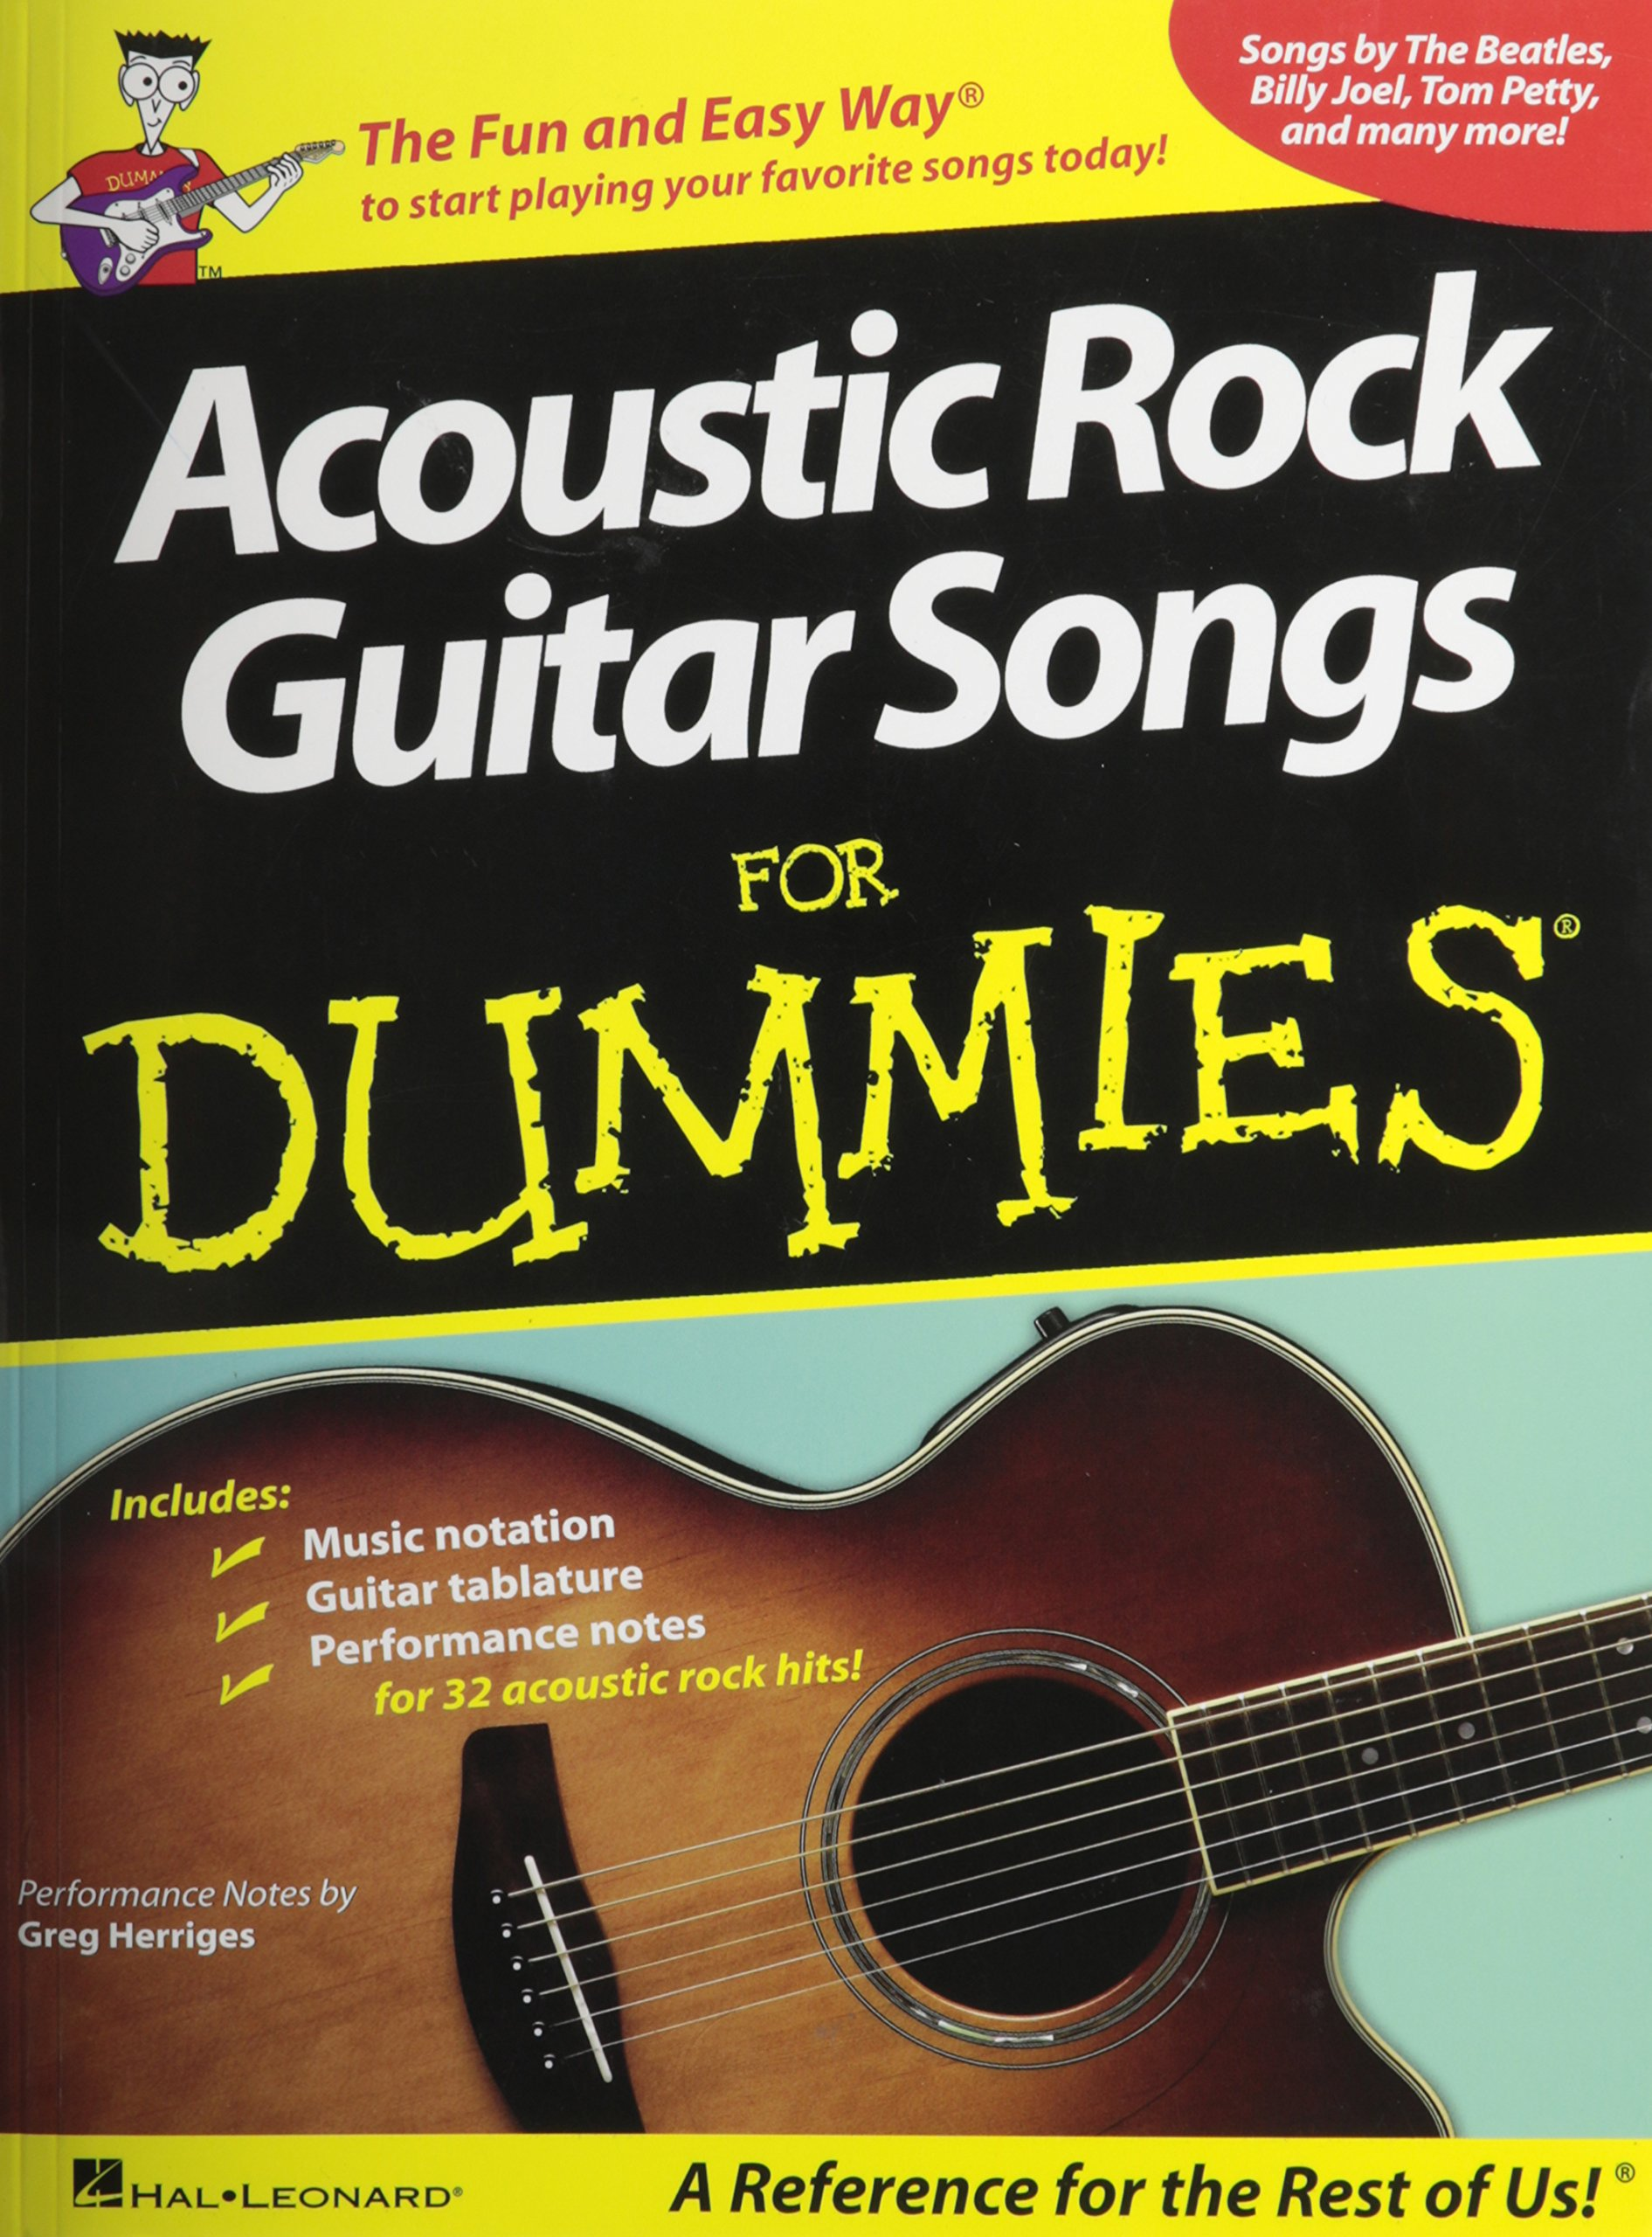 Acoustic Rock Guitar Songs Dummies product image